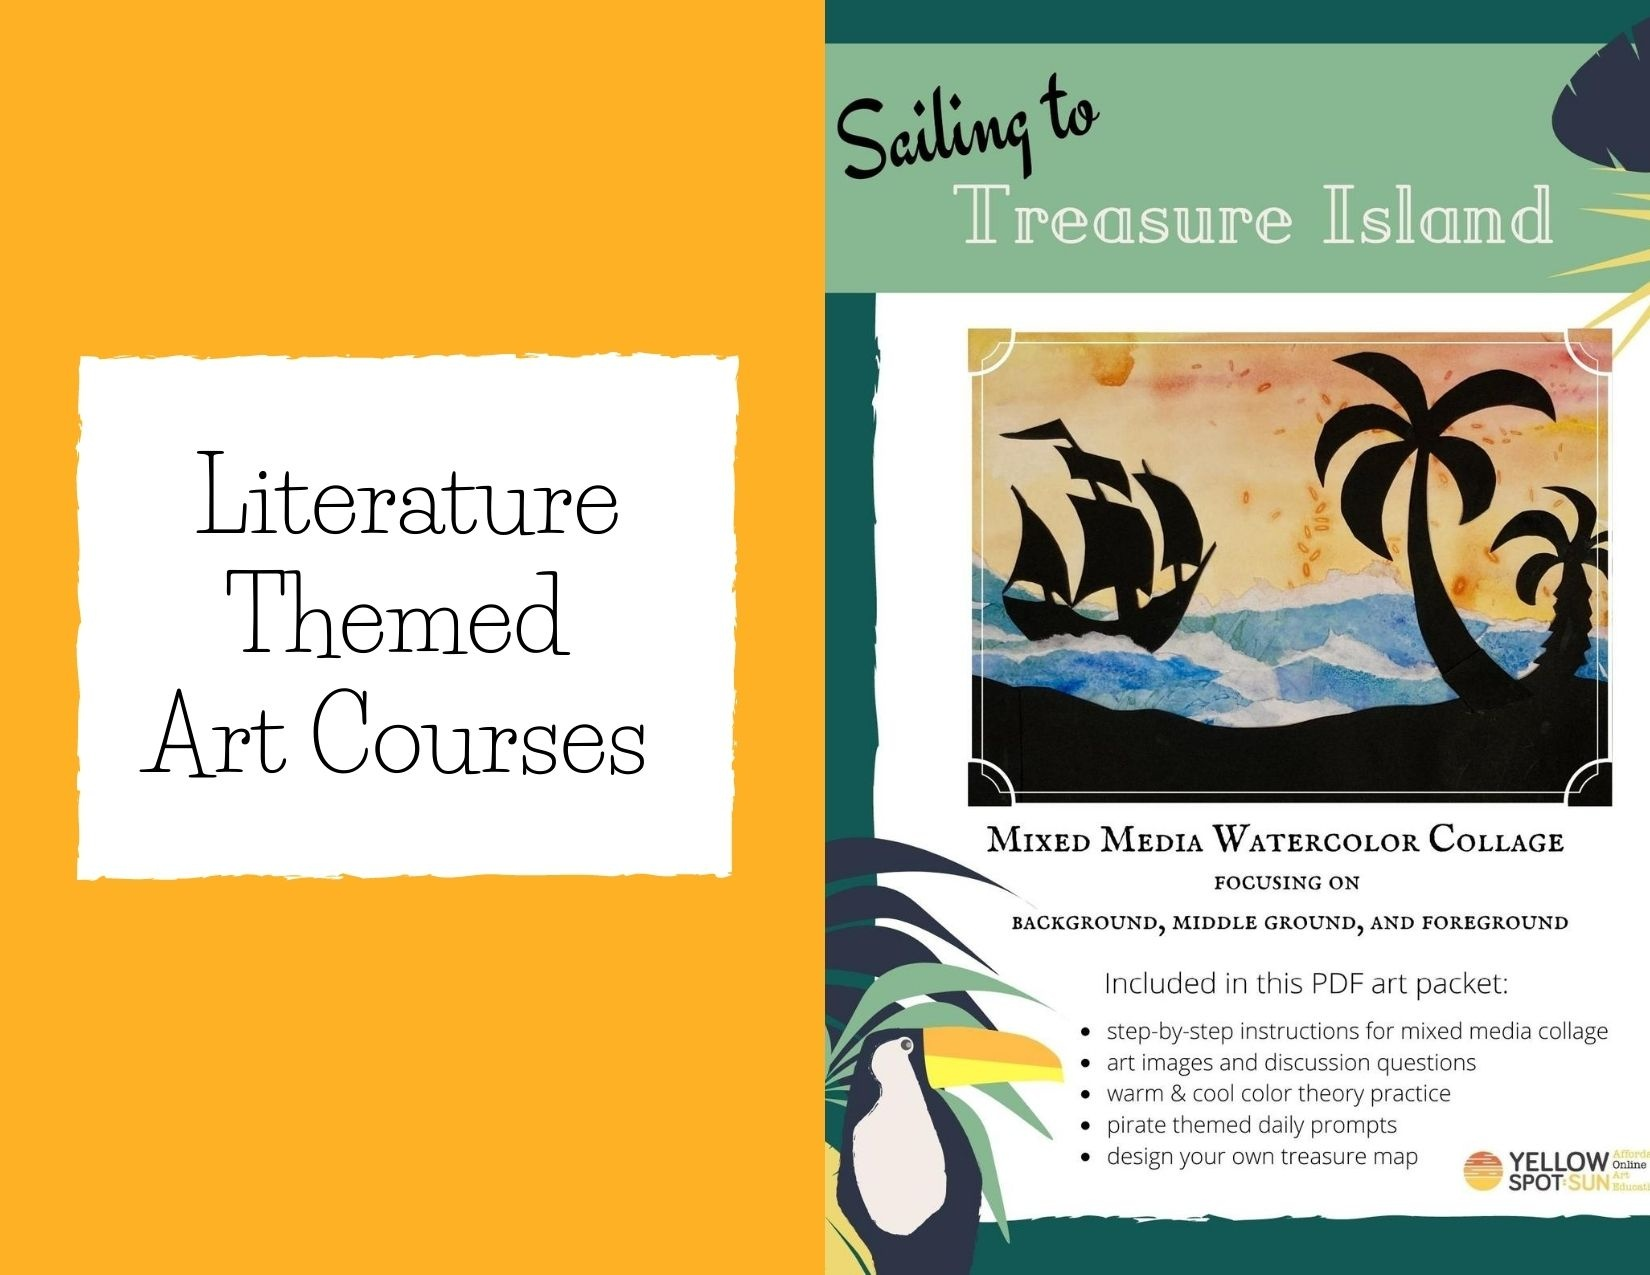 Literature Themed Art Courses